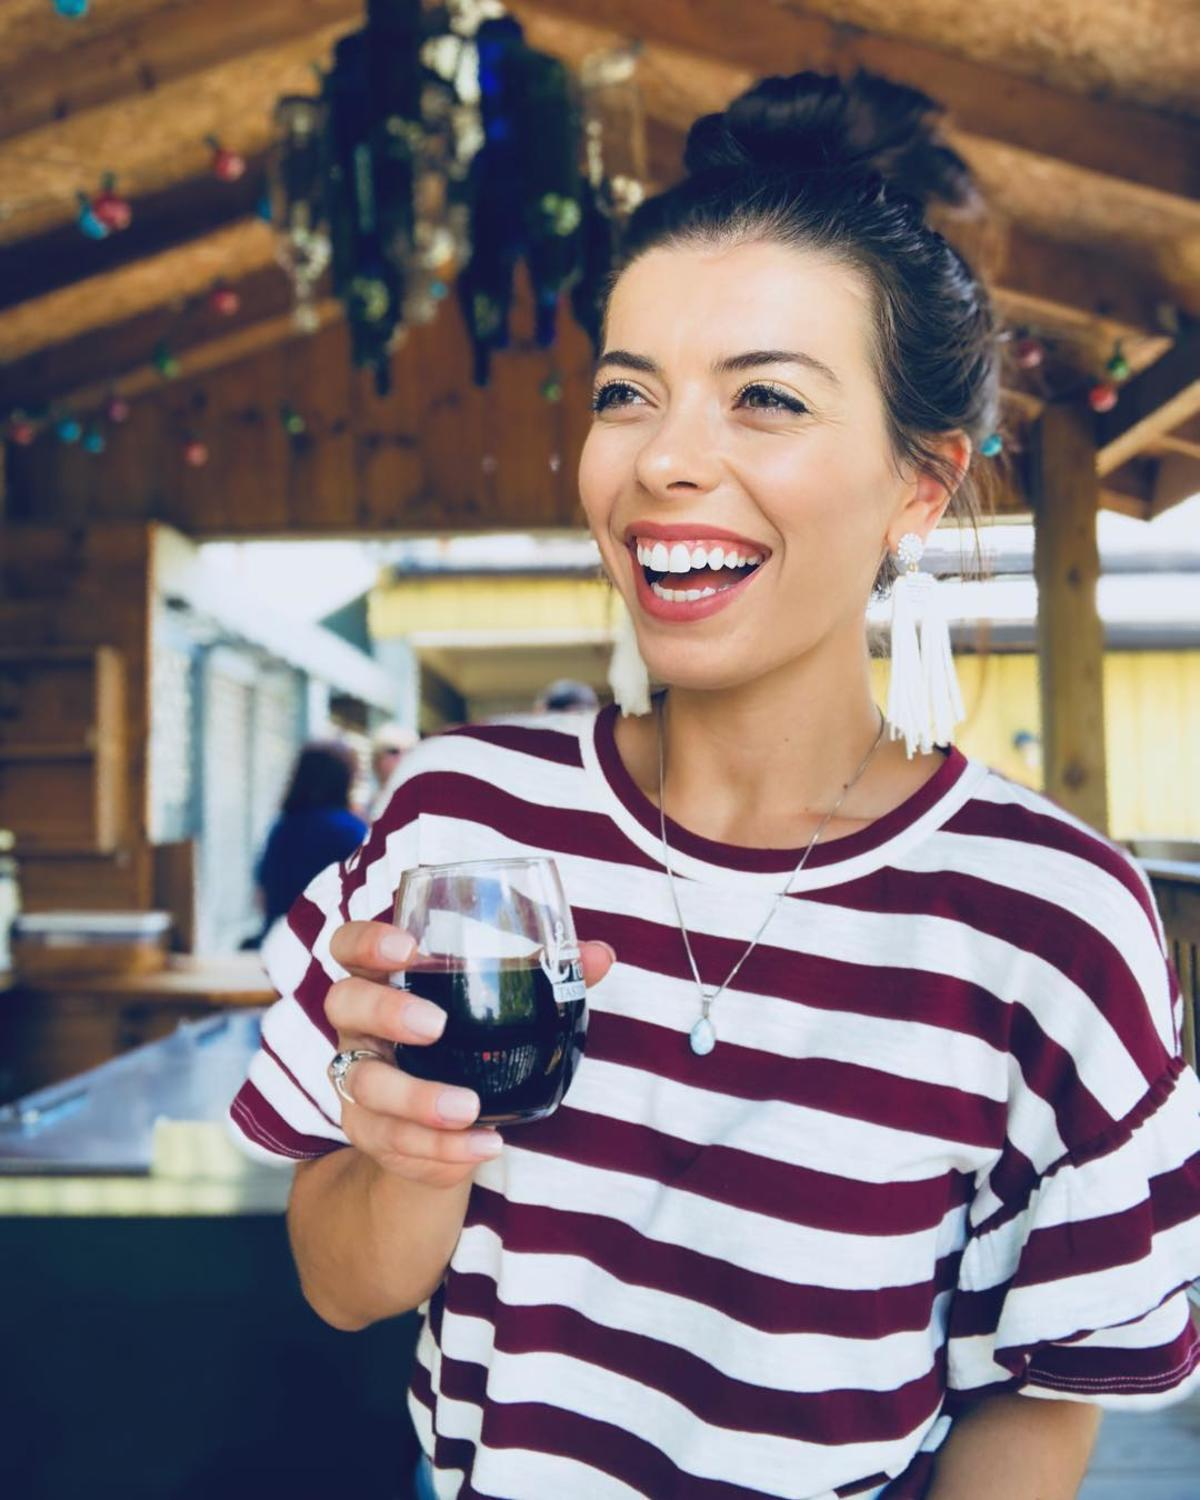 Young woman smiling and laughing while wine tasting at Frankenmuth FunShips